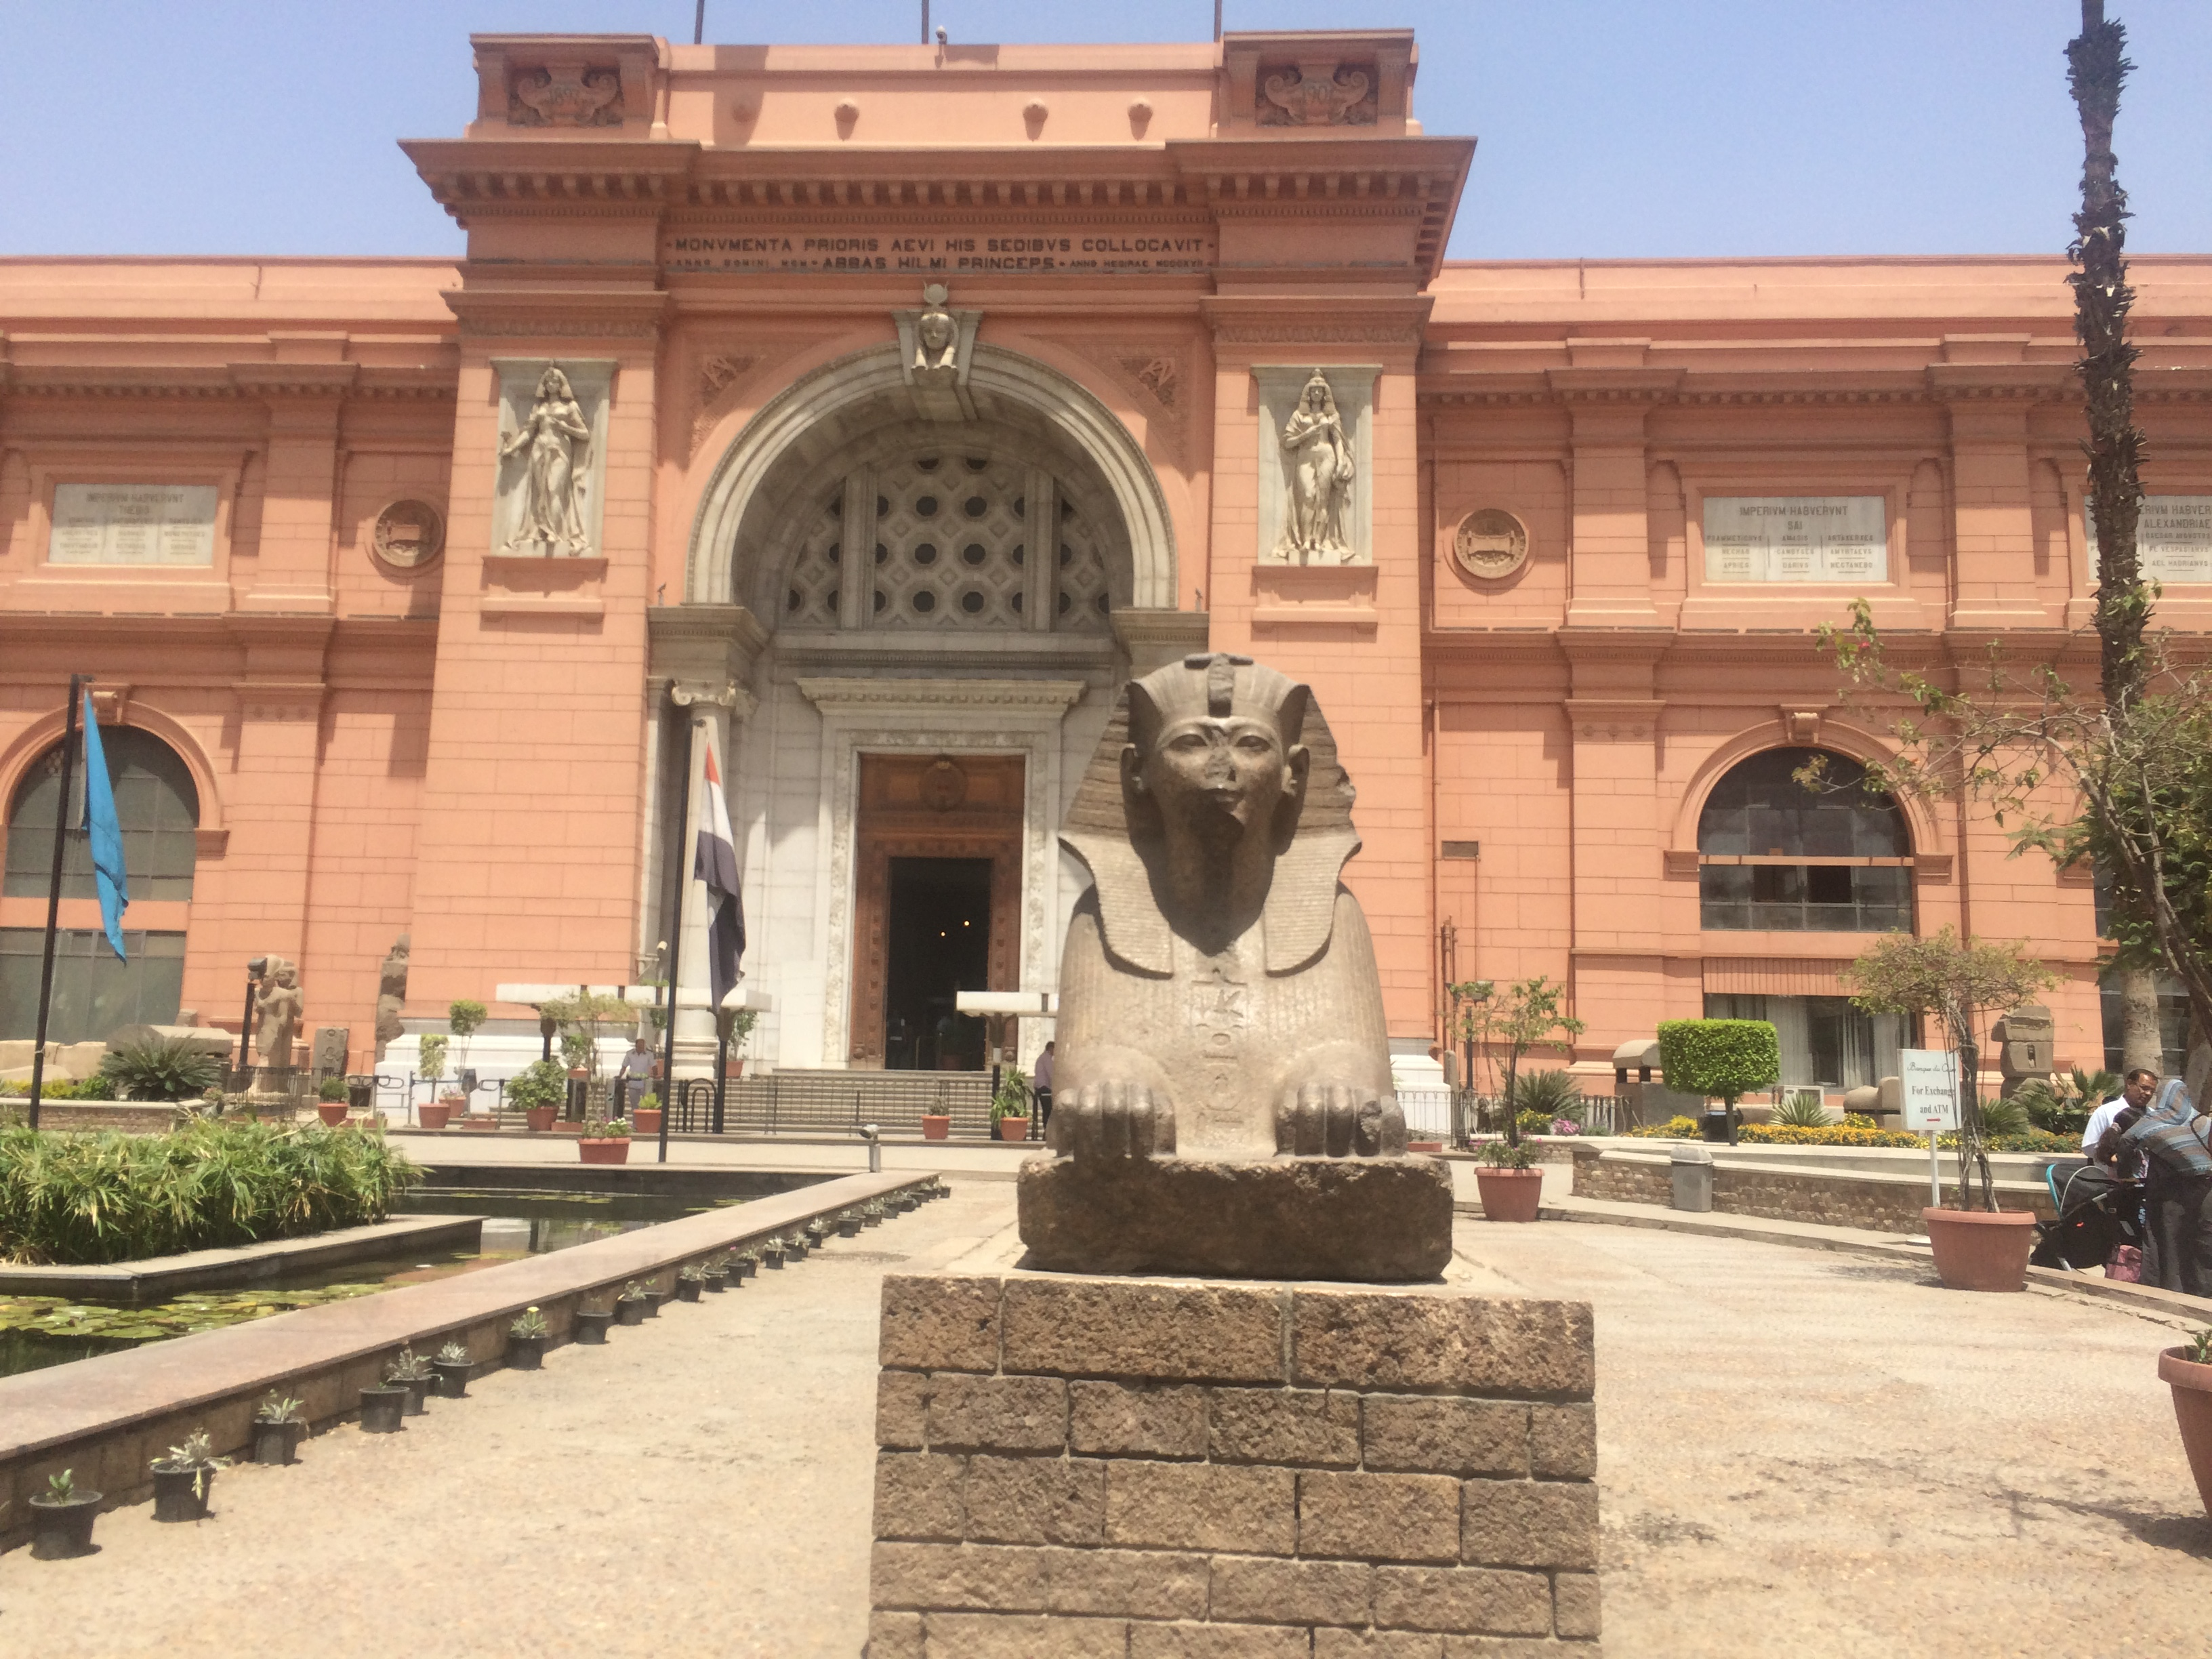 A Week in Cairo: What To Do, Where To Go and What To Eat